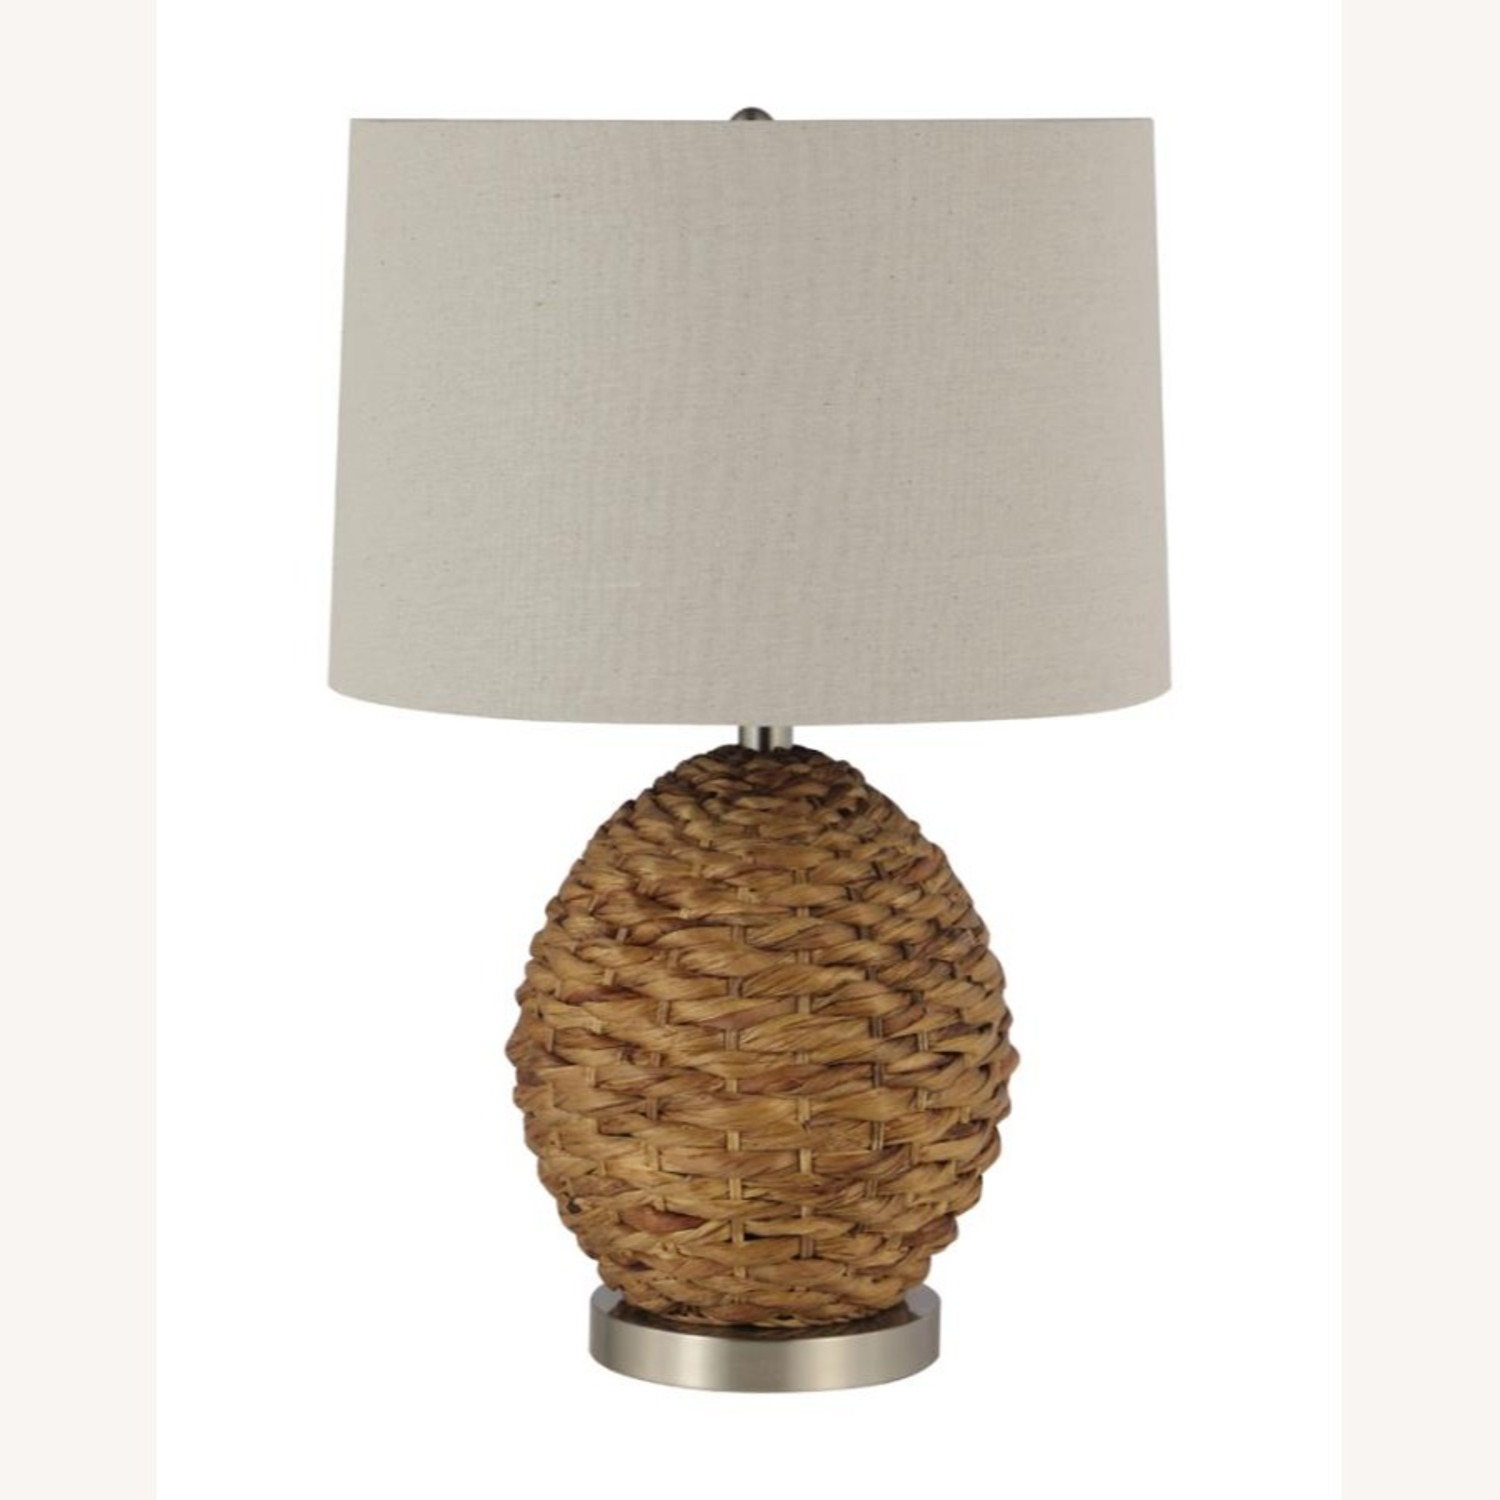 Table Lamp In Beige & Brown Rattan Weave Finish - image-0